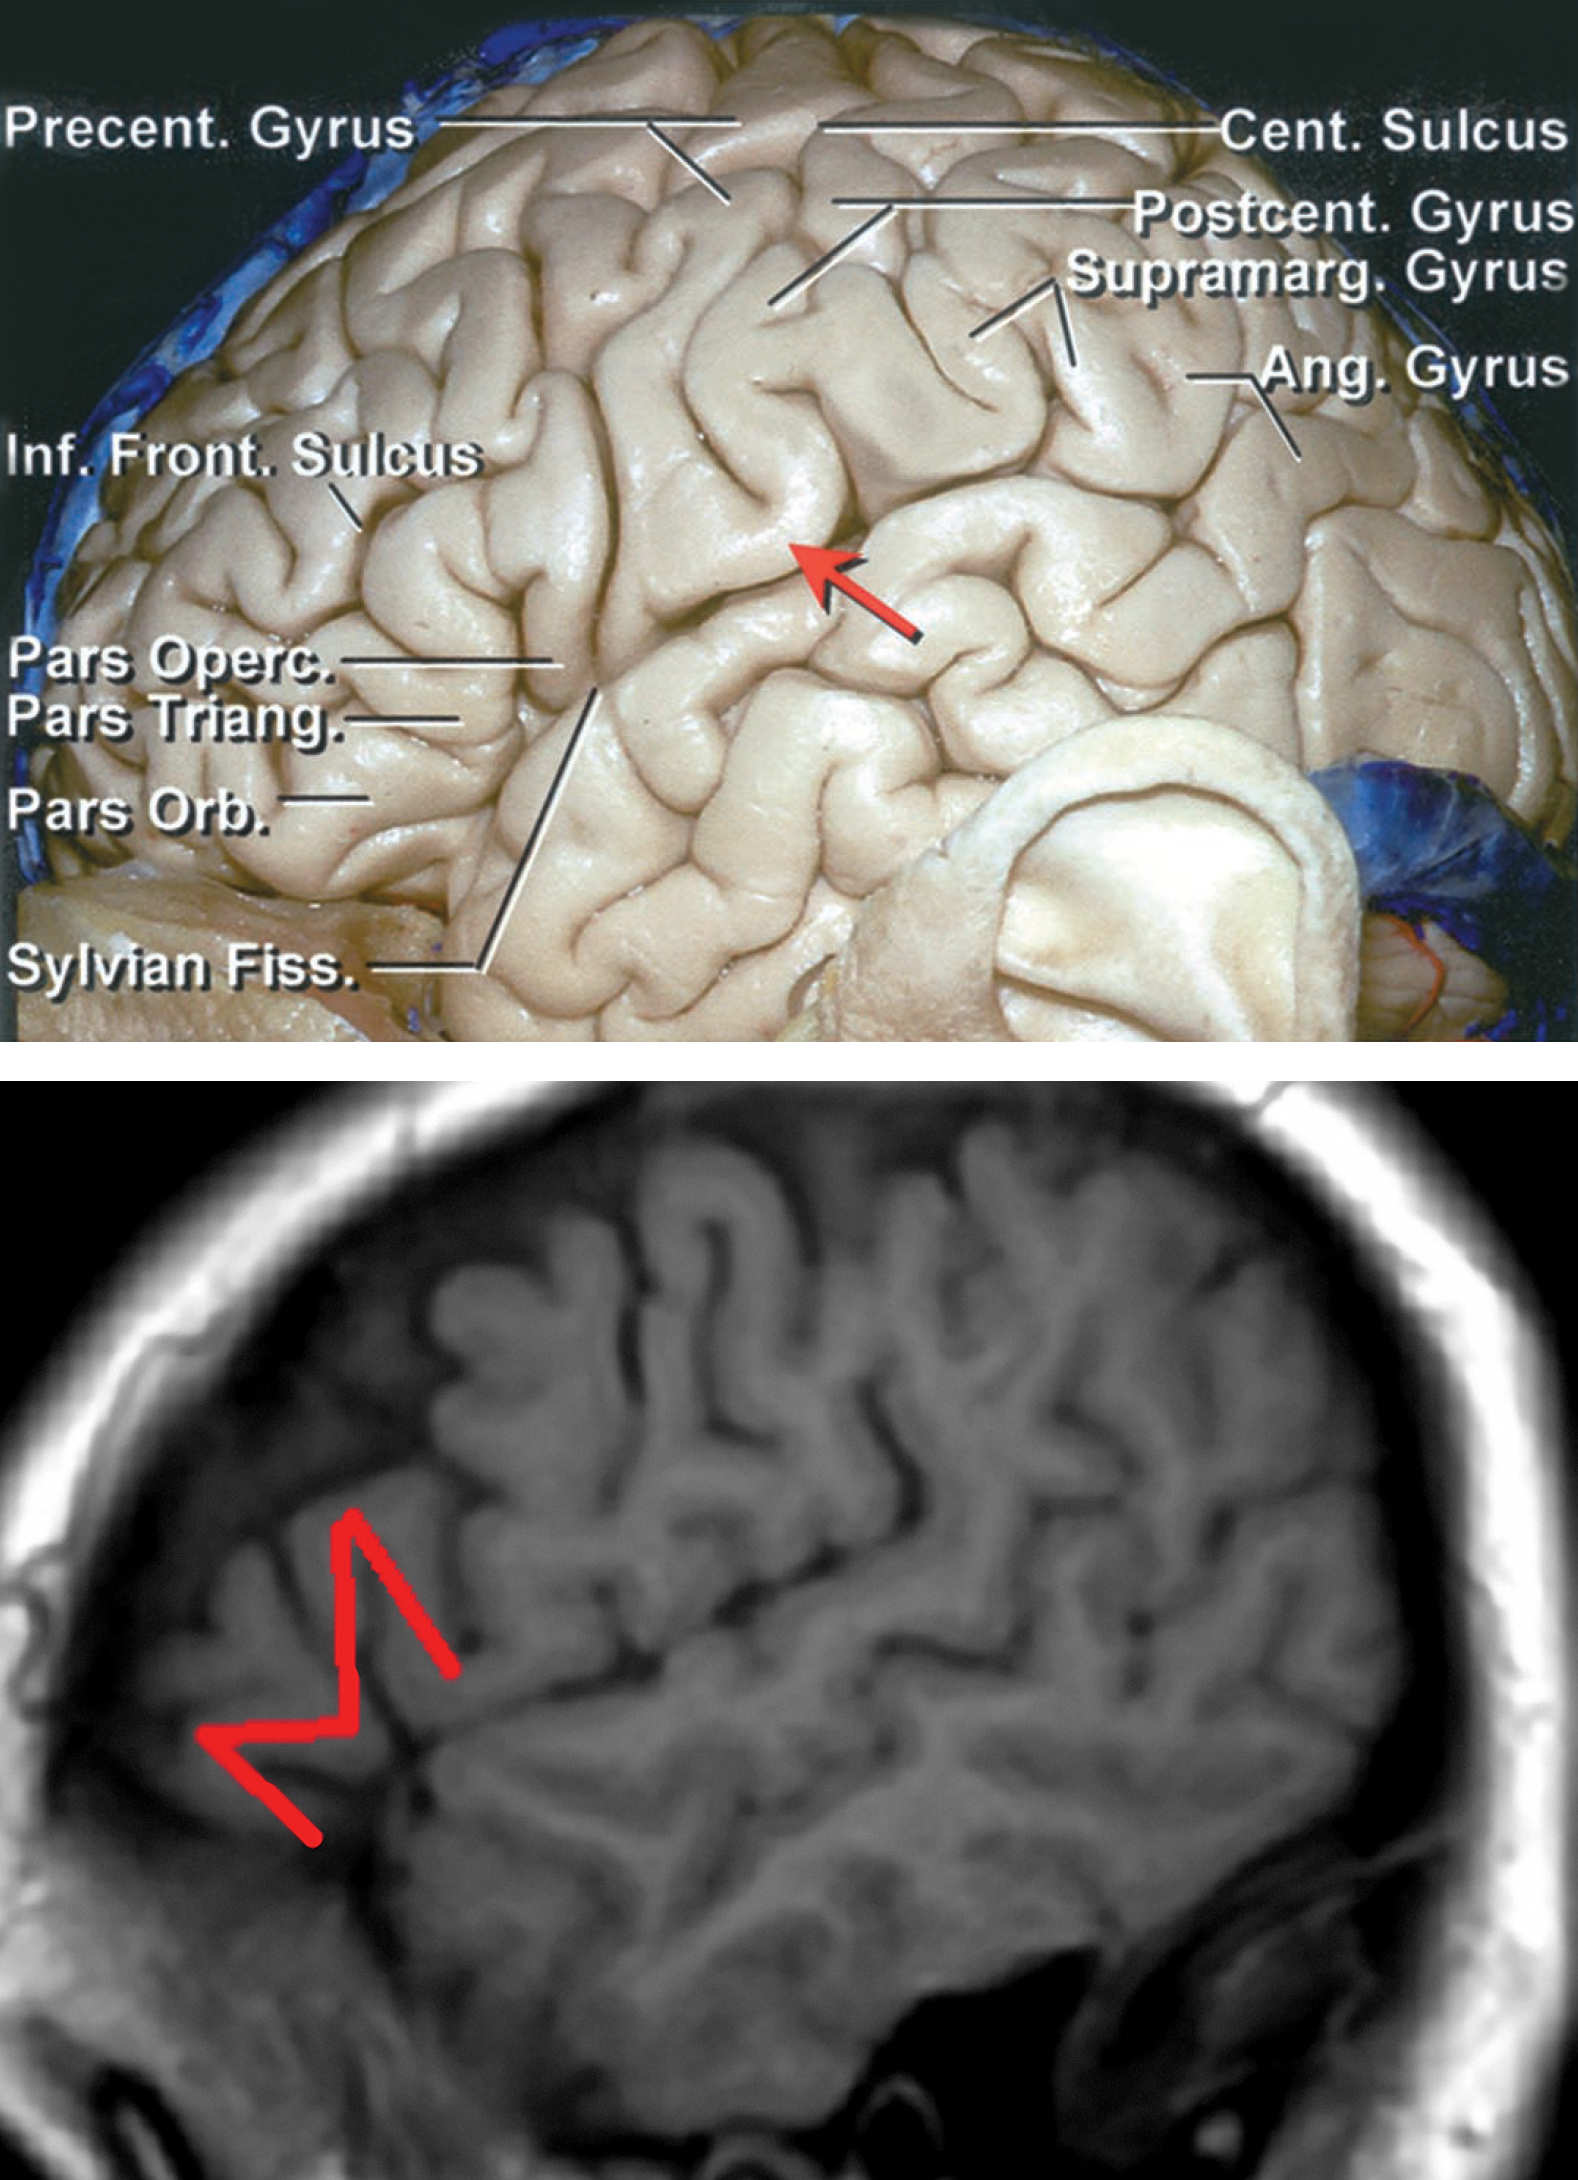 "Figure 4: Left hemisphere and cortical anatomy related to language and sensorimotor function are shown (upper image). The classic cortical sites for language function are marked. Broca's area lies in the posterior aspect of the inferior frontal gyrus. Wernicke's area includes the perisylvian region in the left temporoparietal cortices. Note that there is a gyral bridge (red arrow) between the precentral and postcentral gyri so the sensorimotor cortices do not directly open into the Sylvian fissure (Upper image courtesy of AL Rhoton, Jr).    The M-sign (lower image) signifies Broca's area and should be identified on preoperative imaging to determine its involvement with the tumor and the need for an awake surgery. The ""M"" can be identified on sagittal sequences as an M-shaped gyrus formed by the pars orbitalis, triangularis, and opercularis (lower image). This region contains the motor or expressive component of speech in 87-89% of patients.     The locations of the cortical language centers (comprehension or receptive speech) are incredibly variable.  In fact, the resections guided by purely standard anatomic landmarks (ie anterior 4 cm of the dominant temporal lobe) have led to postoperative language deficits."